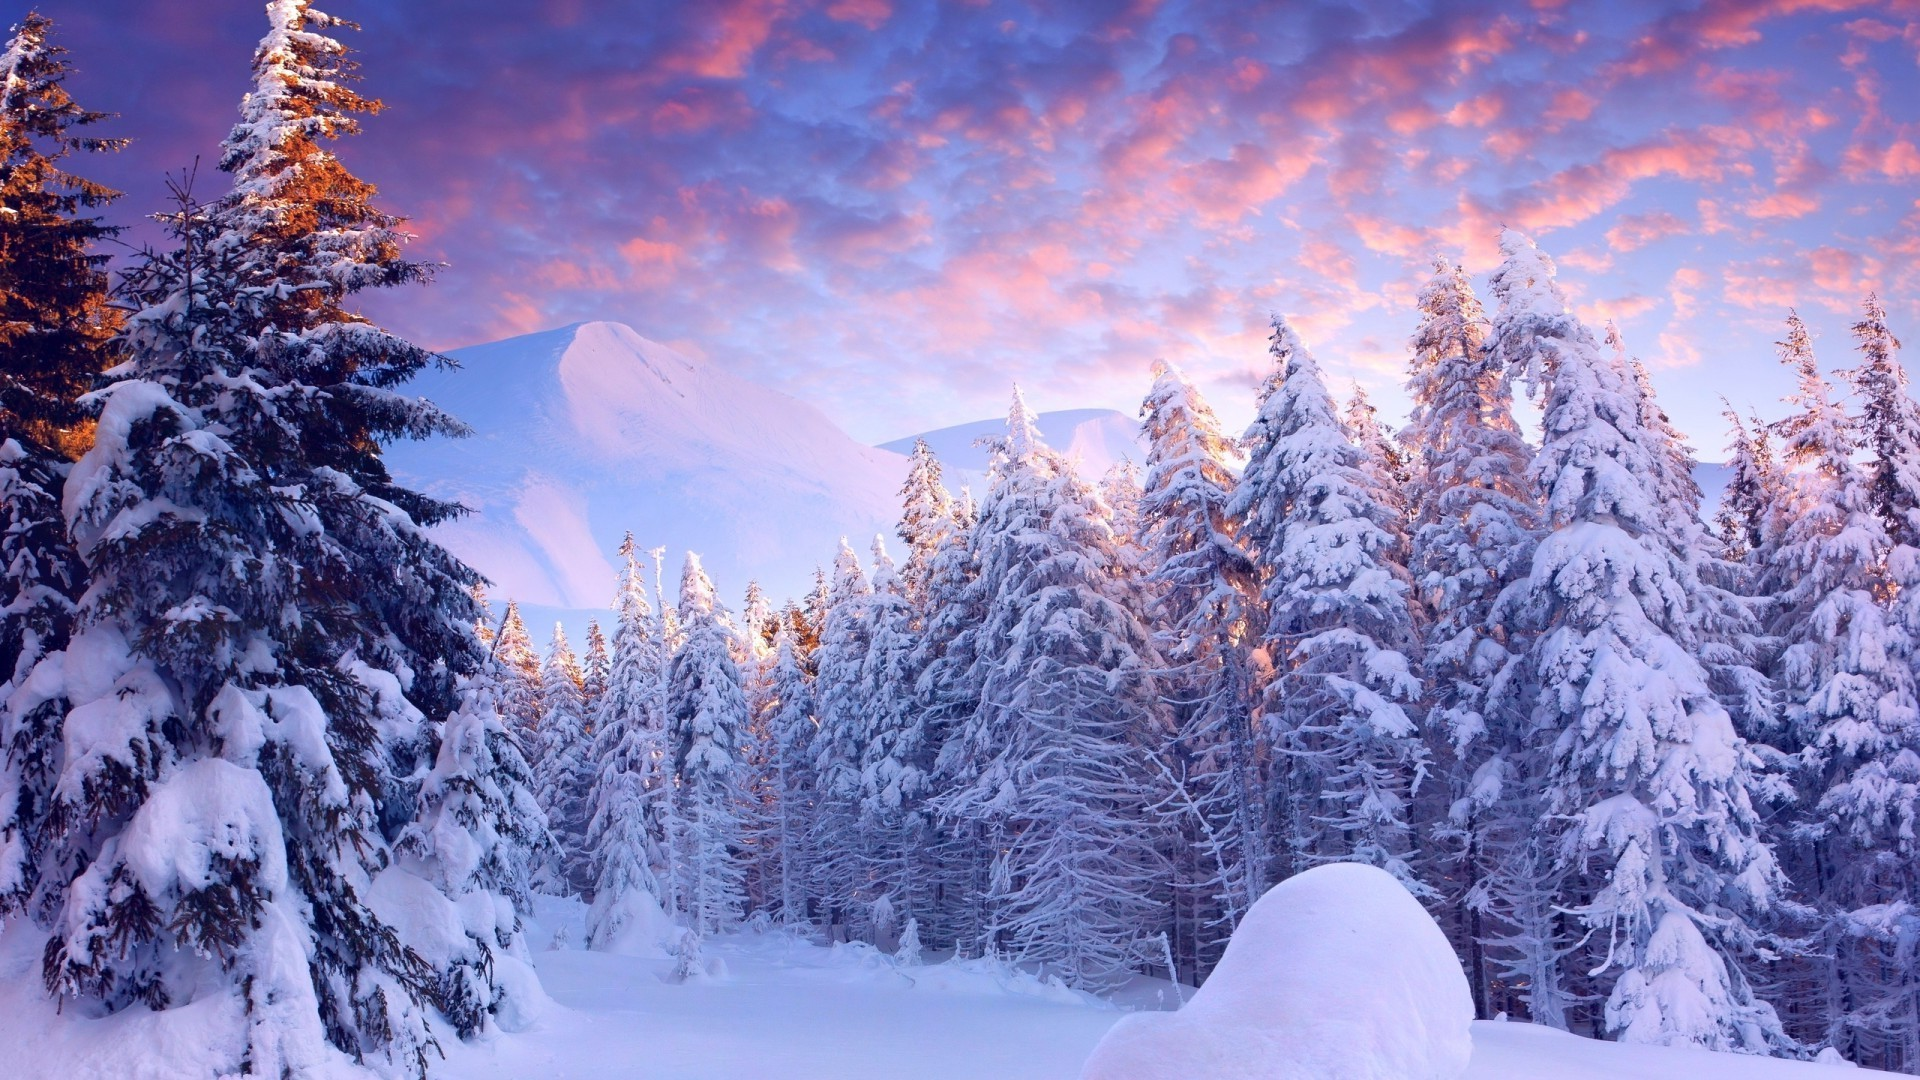 Winter Sunset Over Snowy Forest Desktop Wallpapers For Free